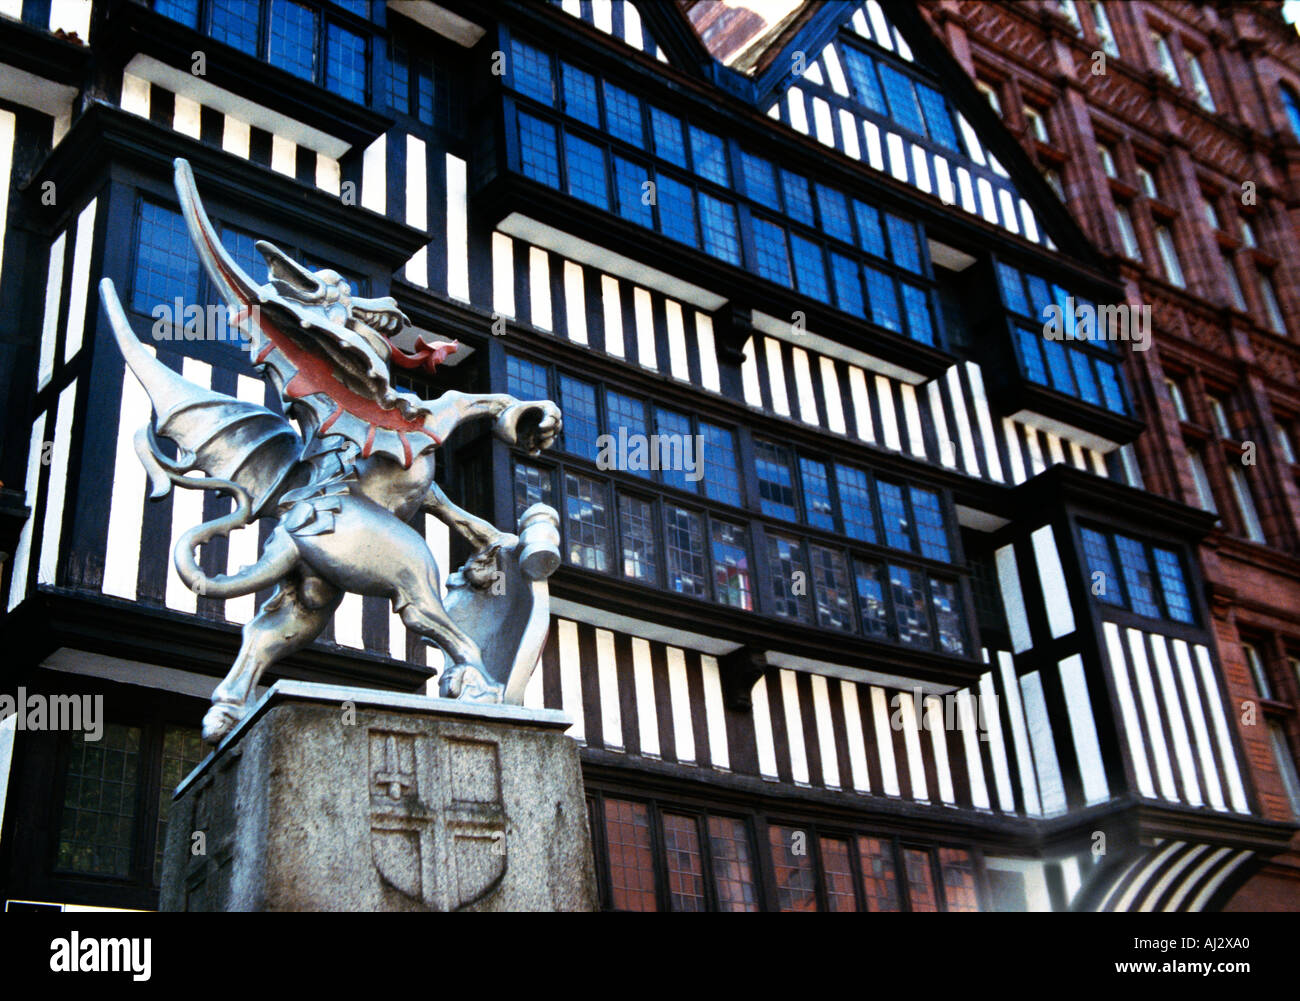 Dragon figure and shield of Saint George at entrance to City of London at Holborn - Stock Image